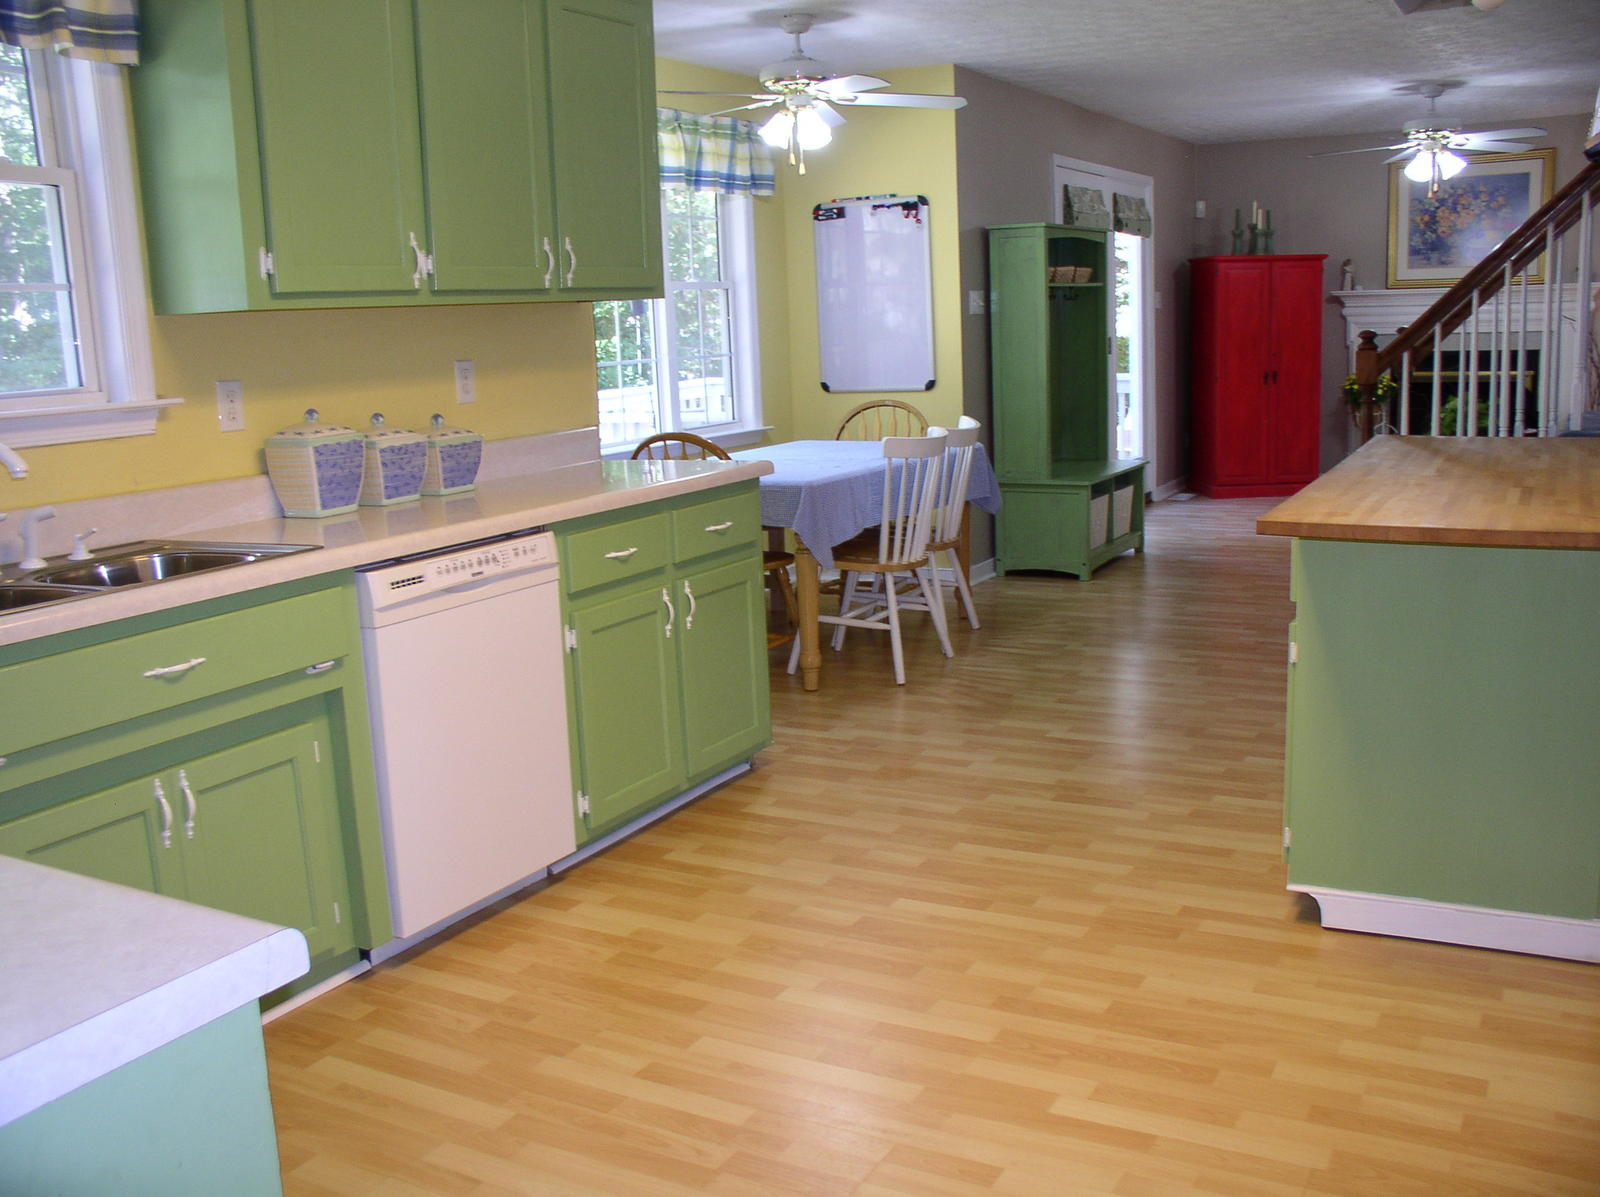 Painting your kitchen cabinets painting tips from the pros - Kitchen color ideas ...